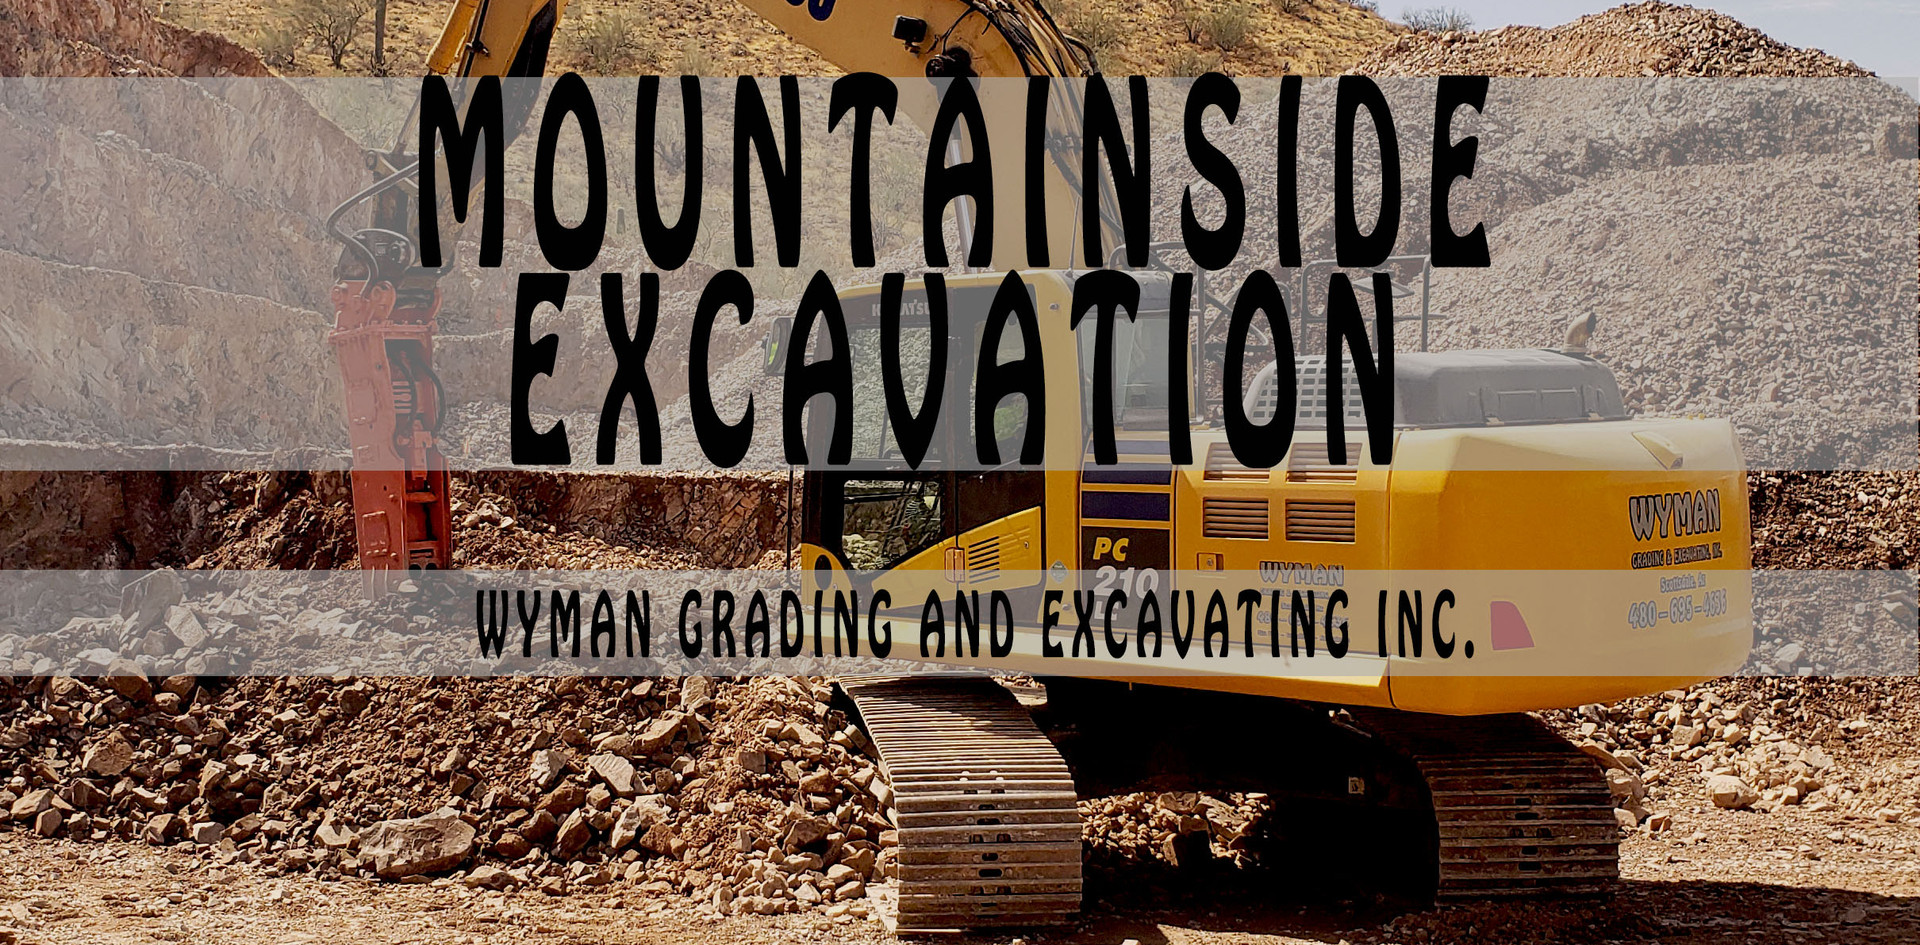 Mounstainside Excavation